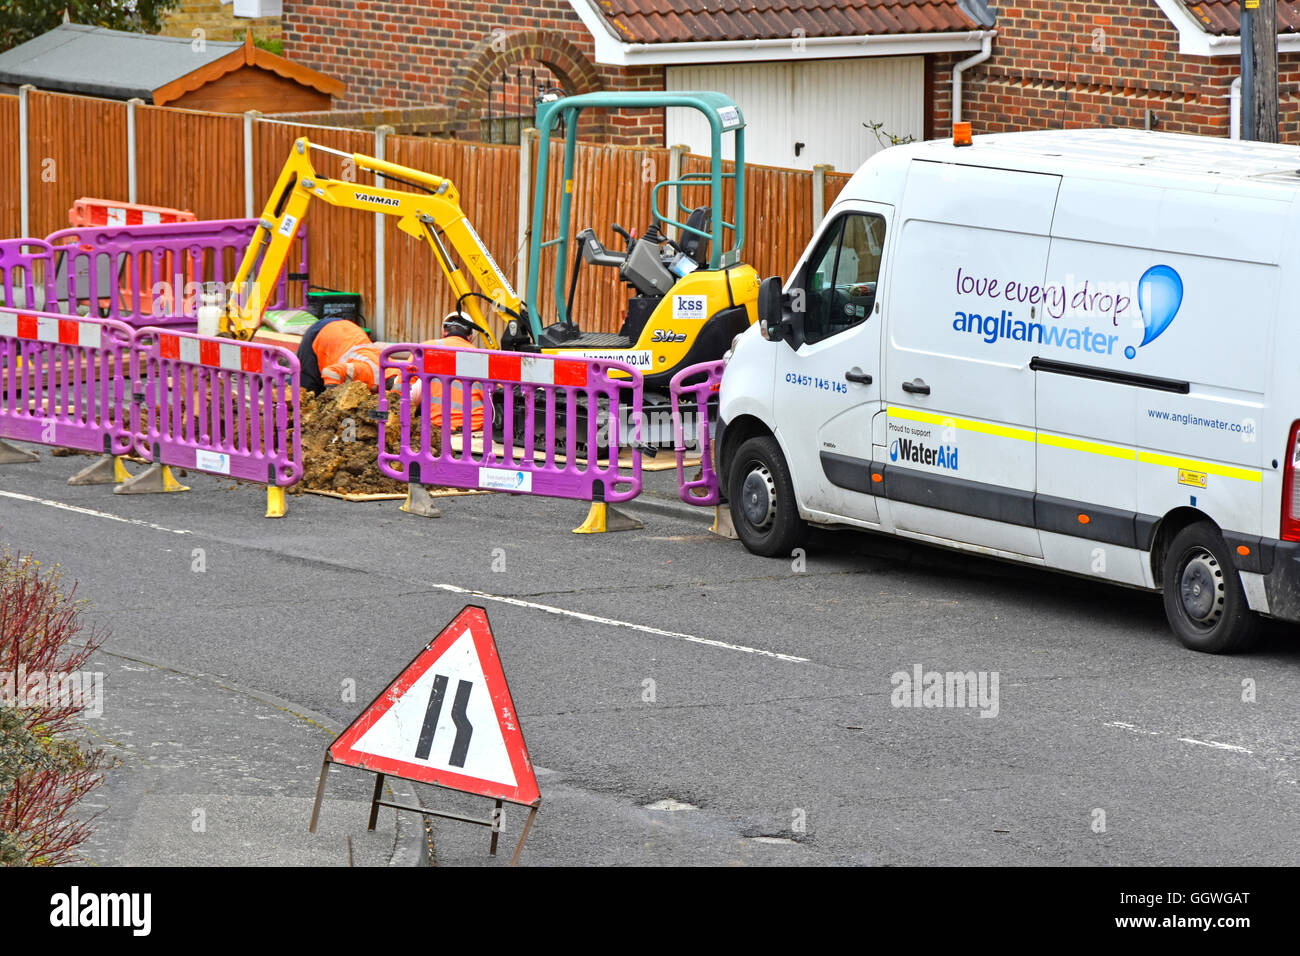 Anglian Water crew and van attending street sewer connection from residential property digging up road & pavement - Stock Image